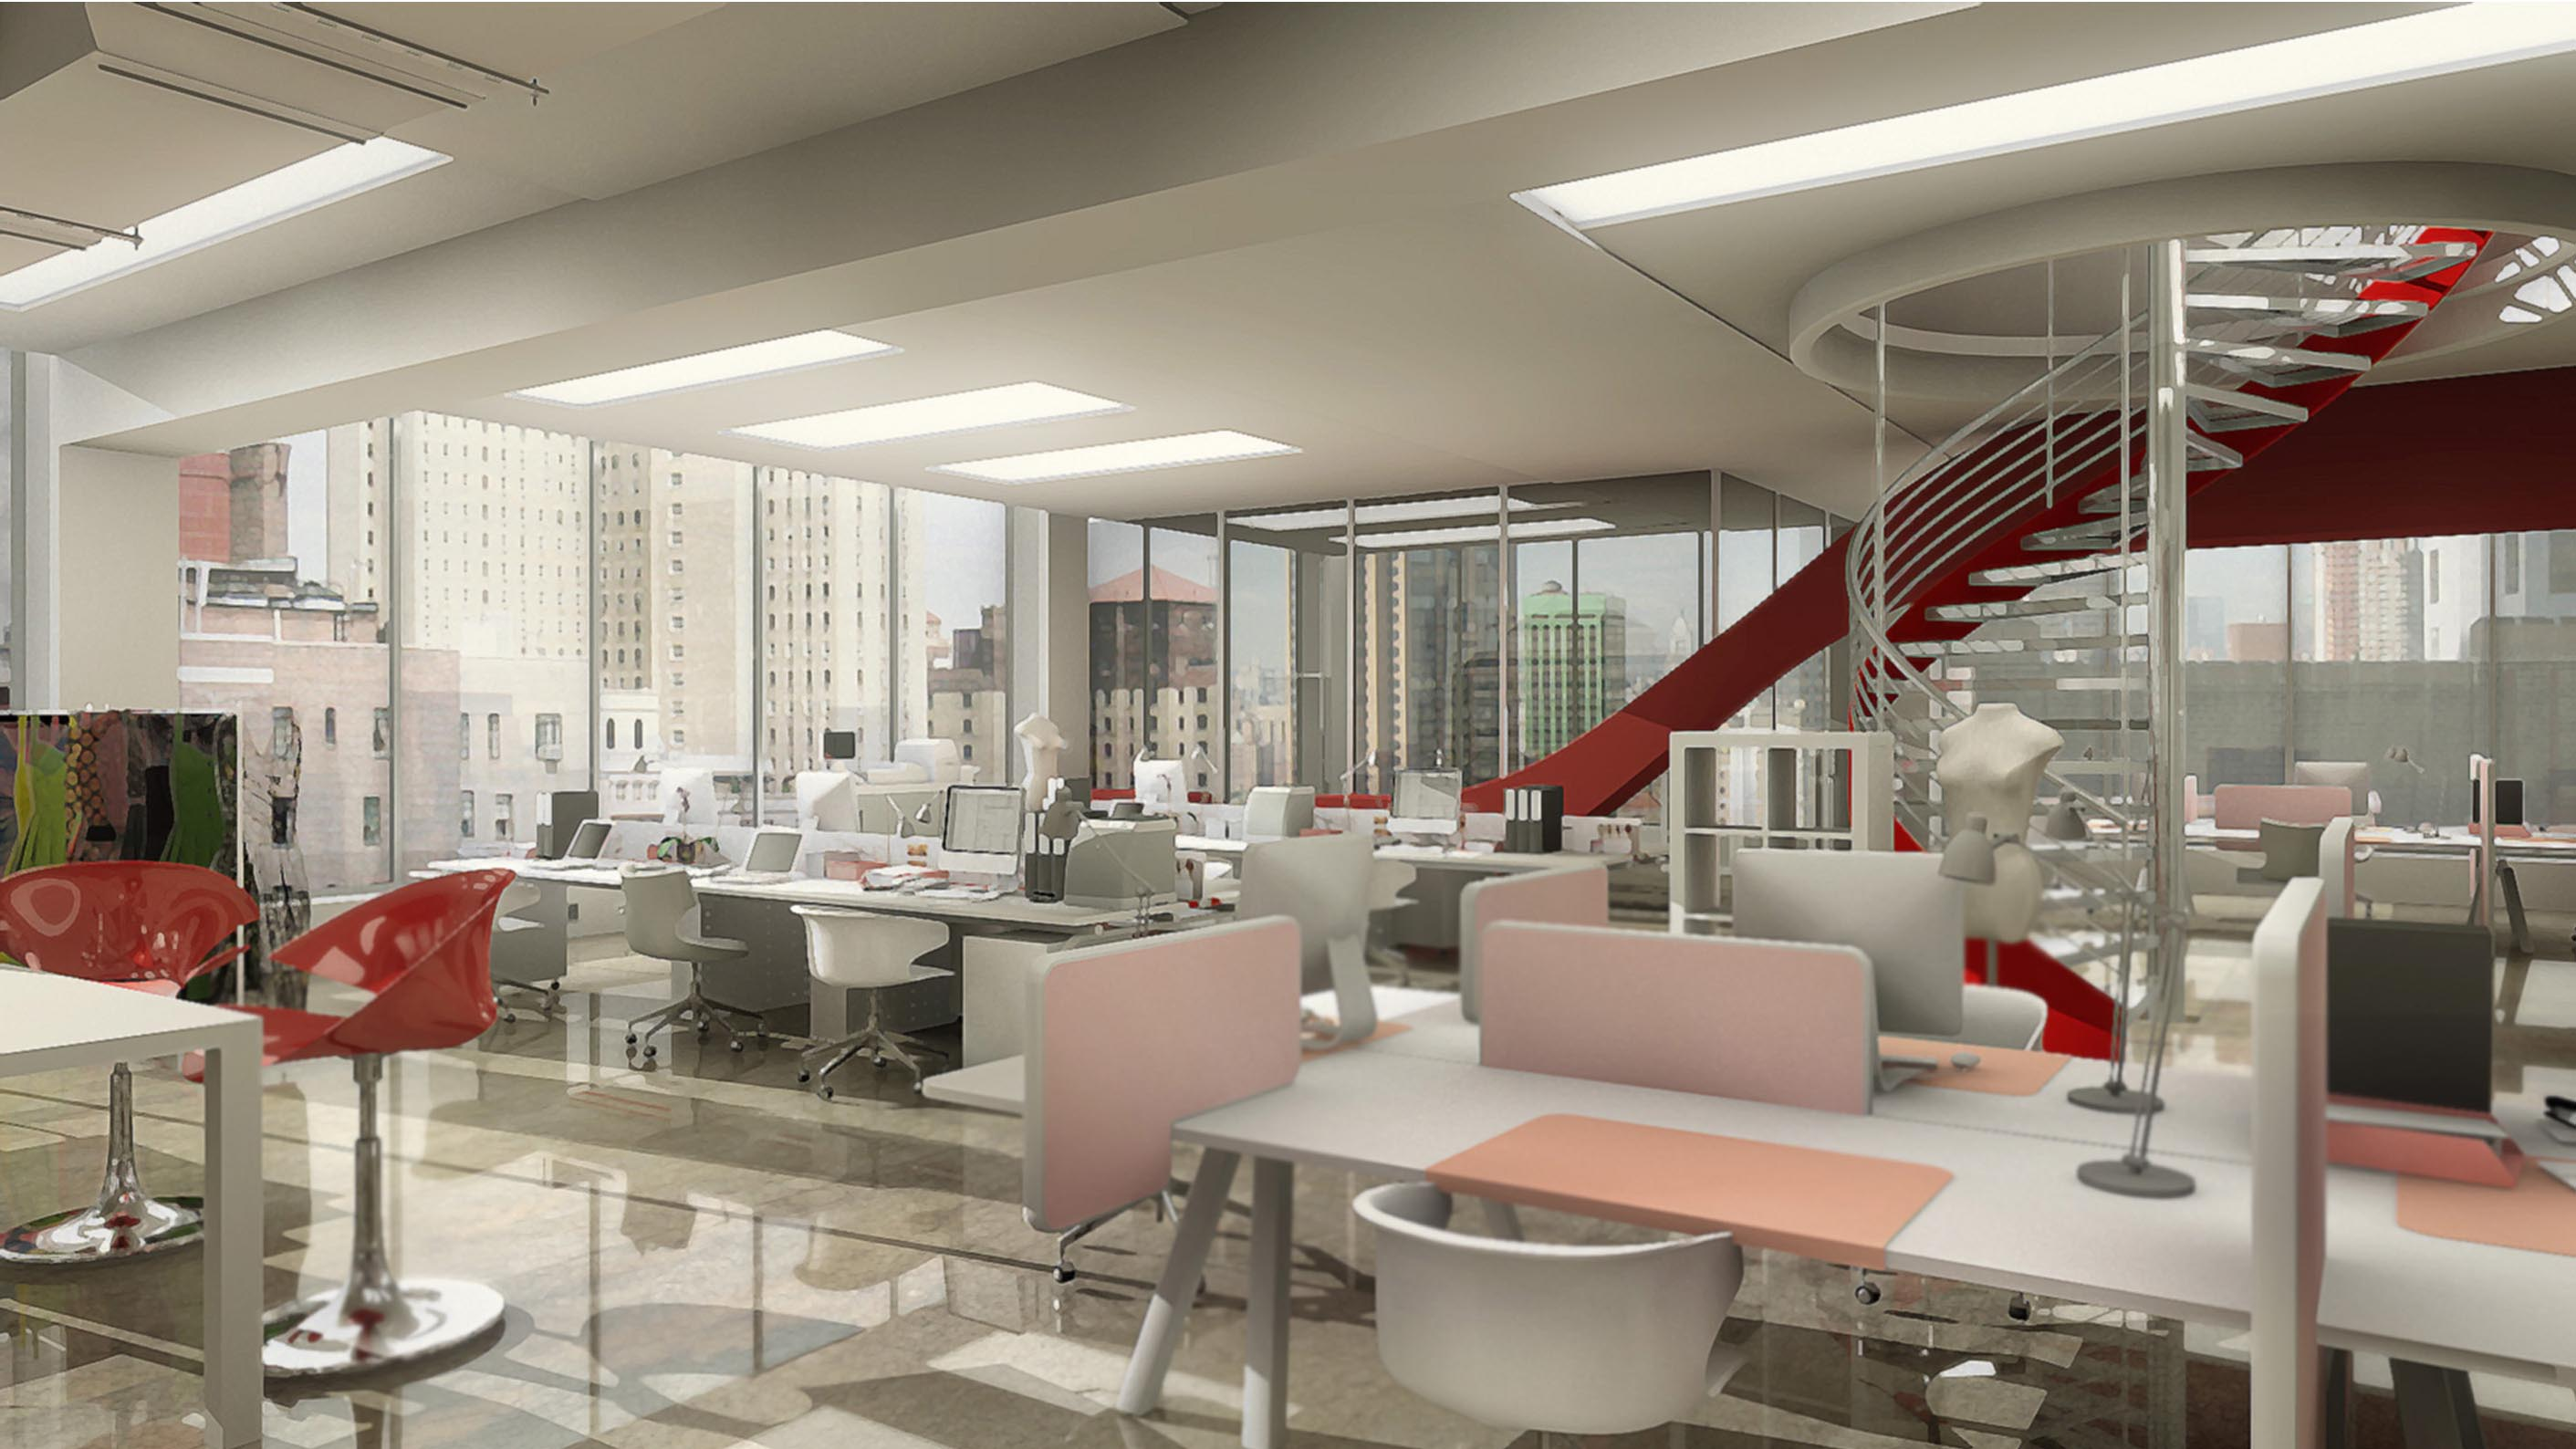 Miniature office interior for Diet Coke commercial